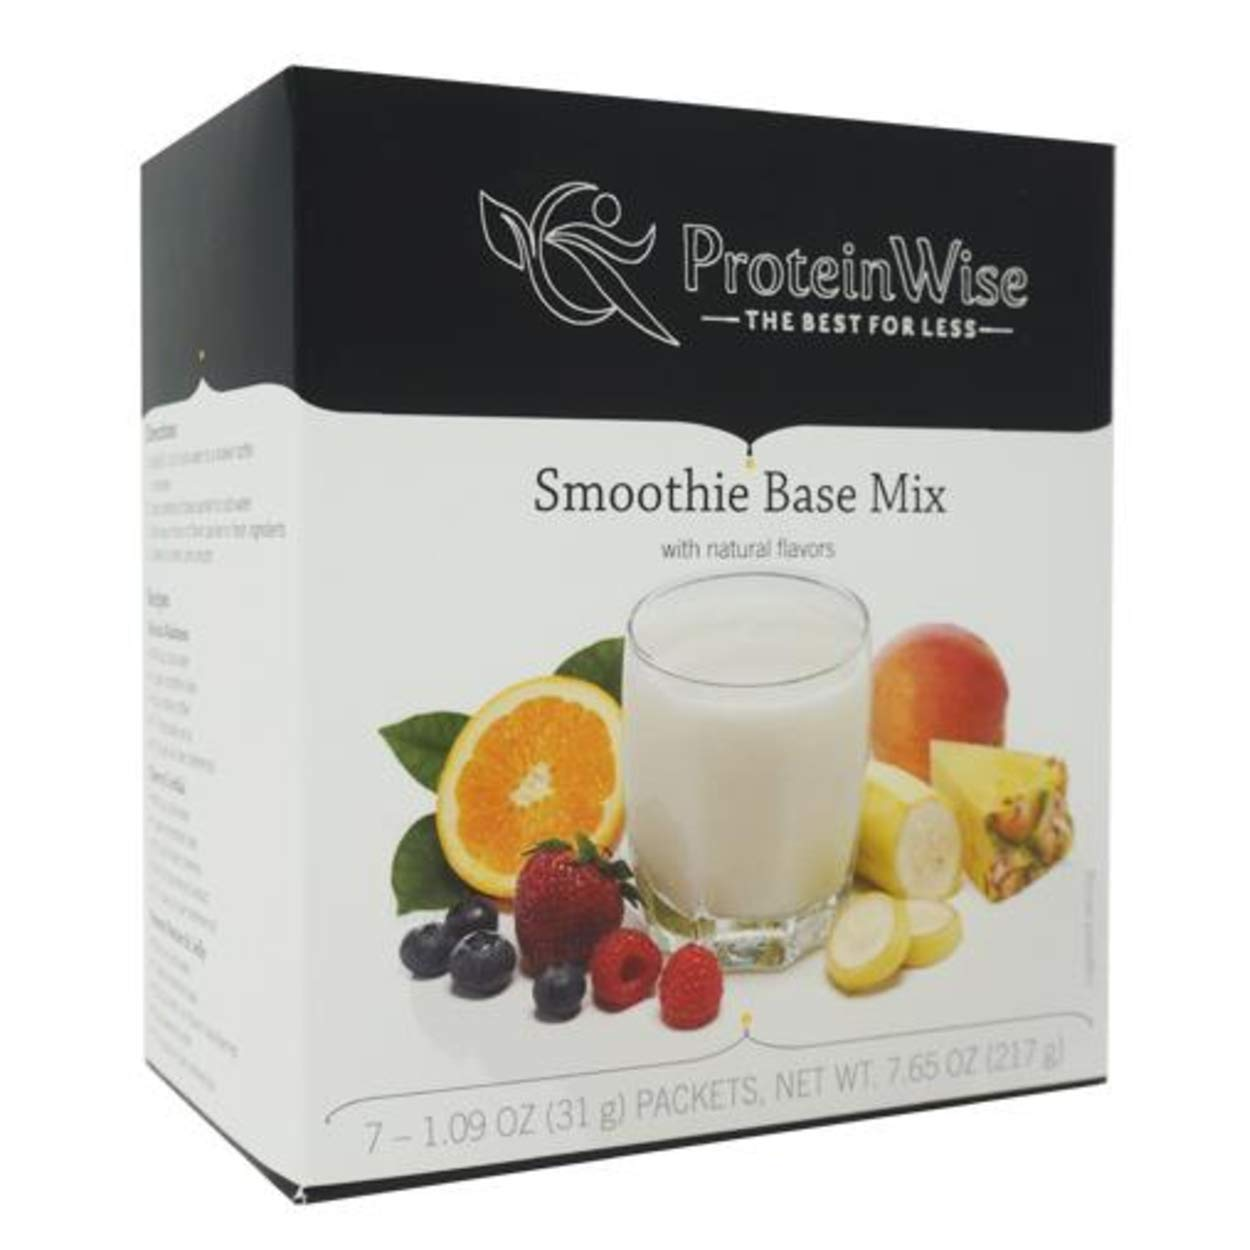 ProteinWise Smoothie OFFer Base Mix High Low Loss Long-awaited Protein Ch Weight